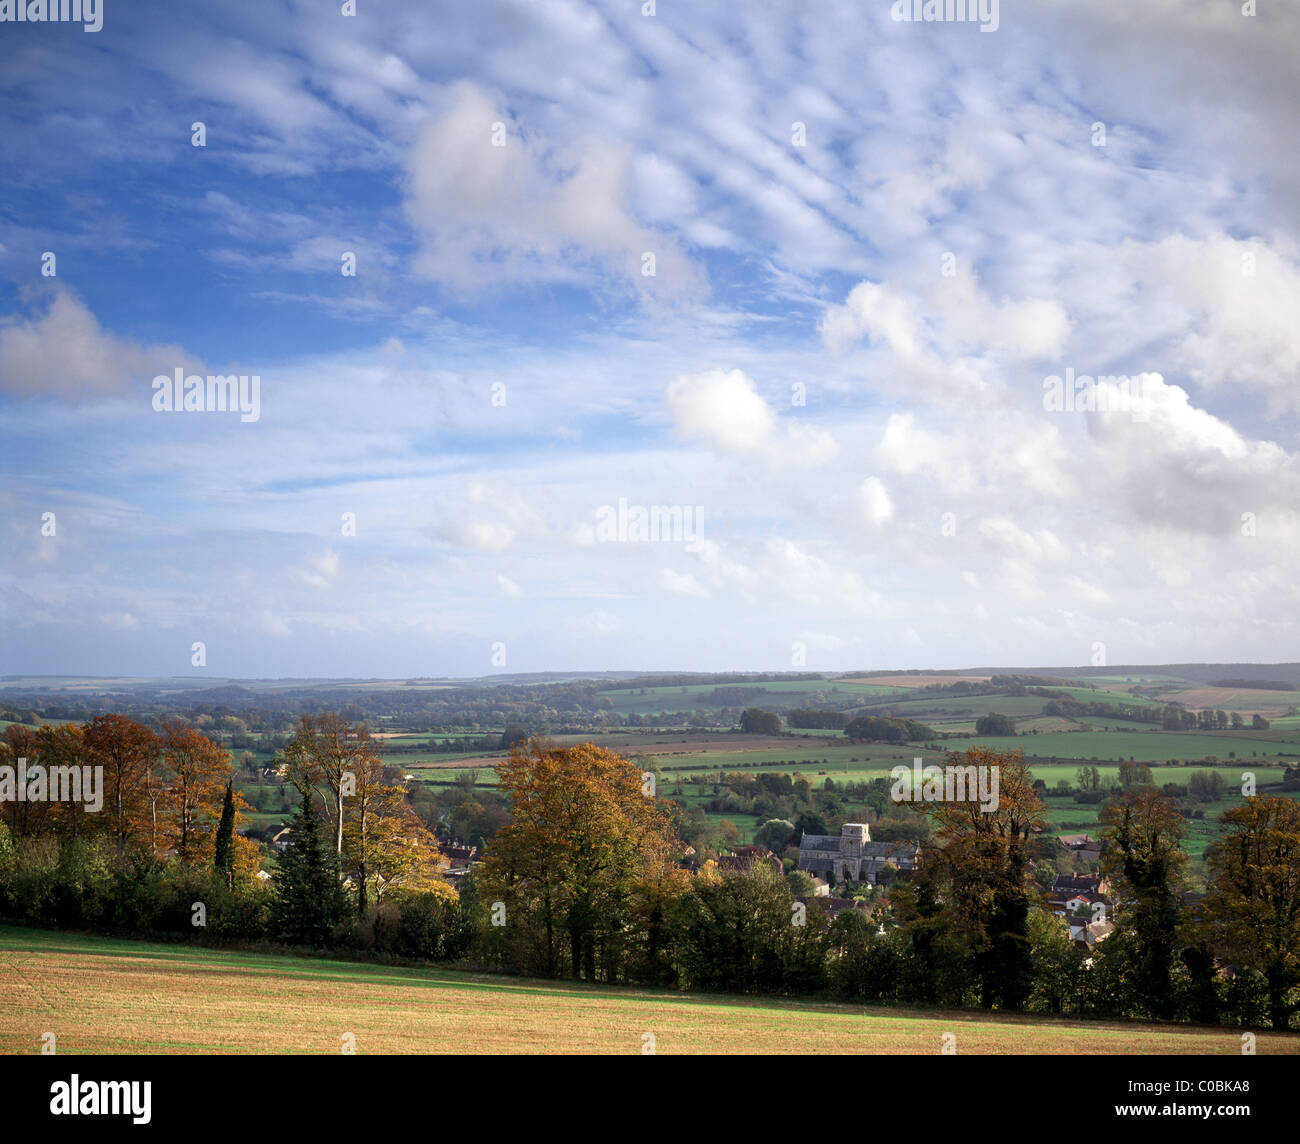 An autumn view of the Wylye Valley in Wiltshire, England, including the village of Heytesbury. Stock Photo